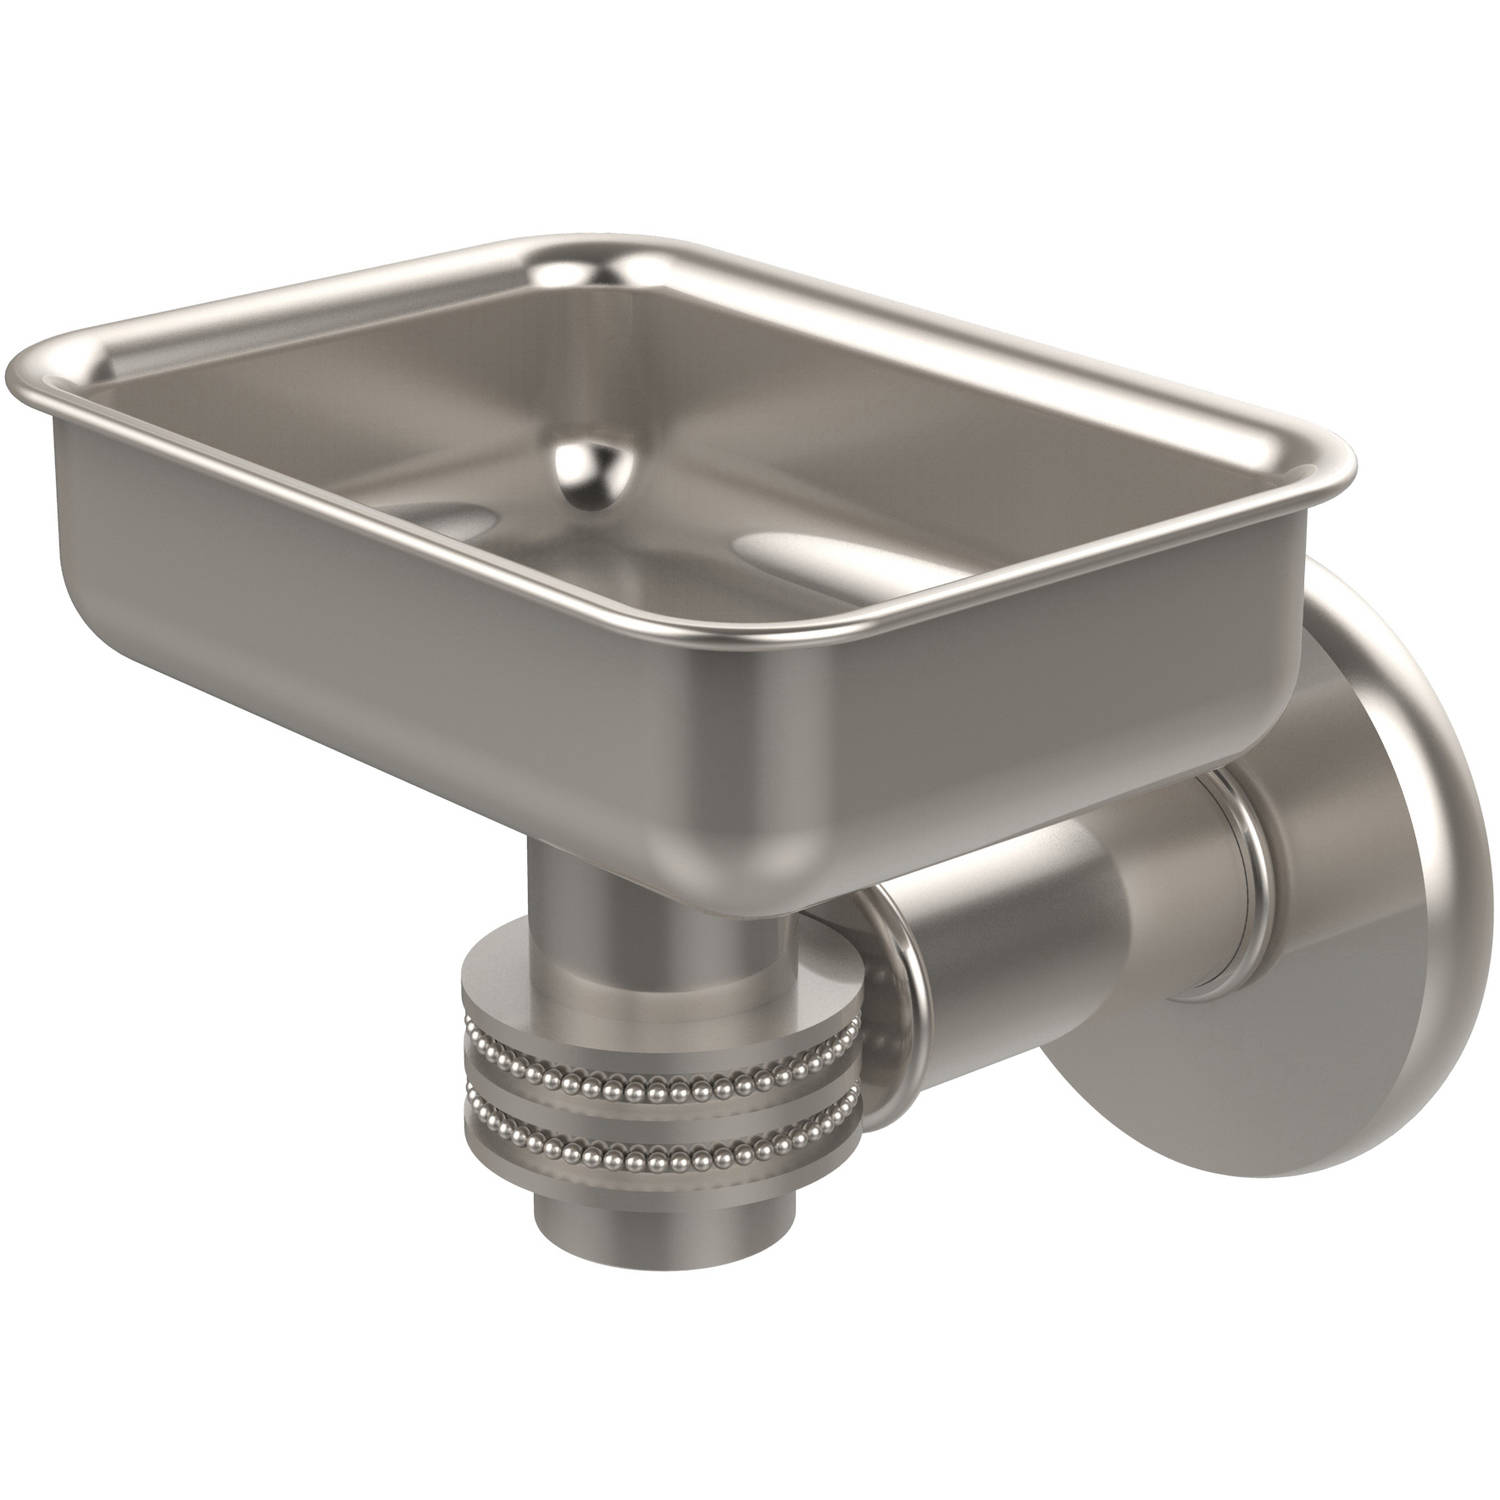 Continental Collection Wall-Mounted Soap Dish Holder with Dotted Accents